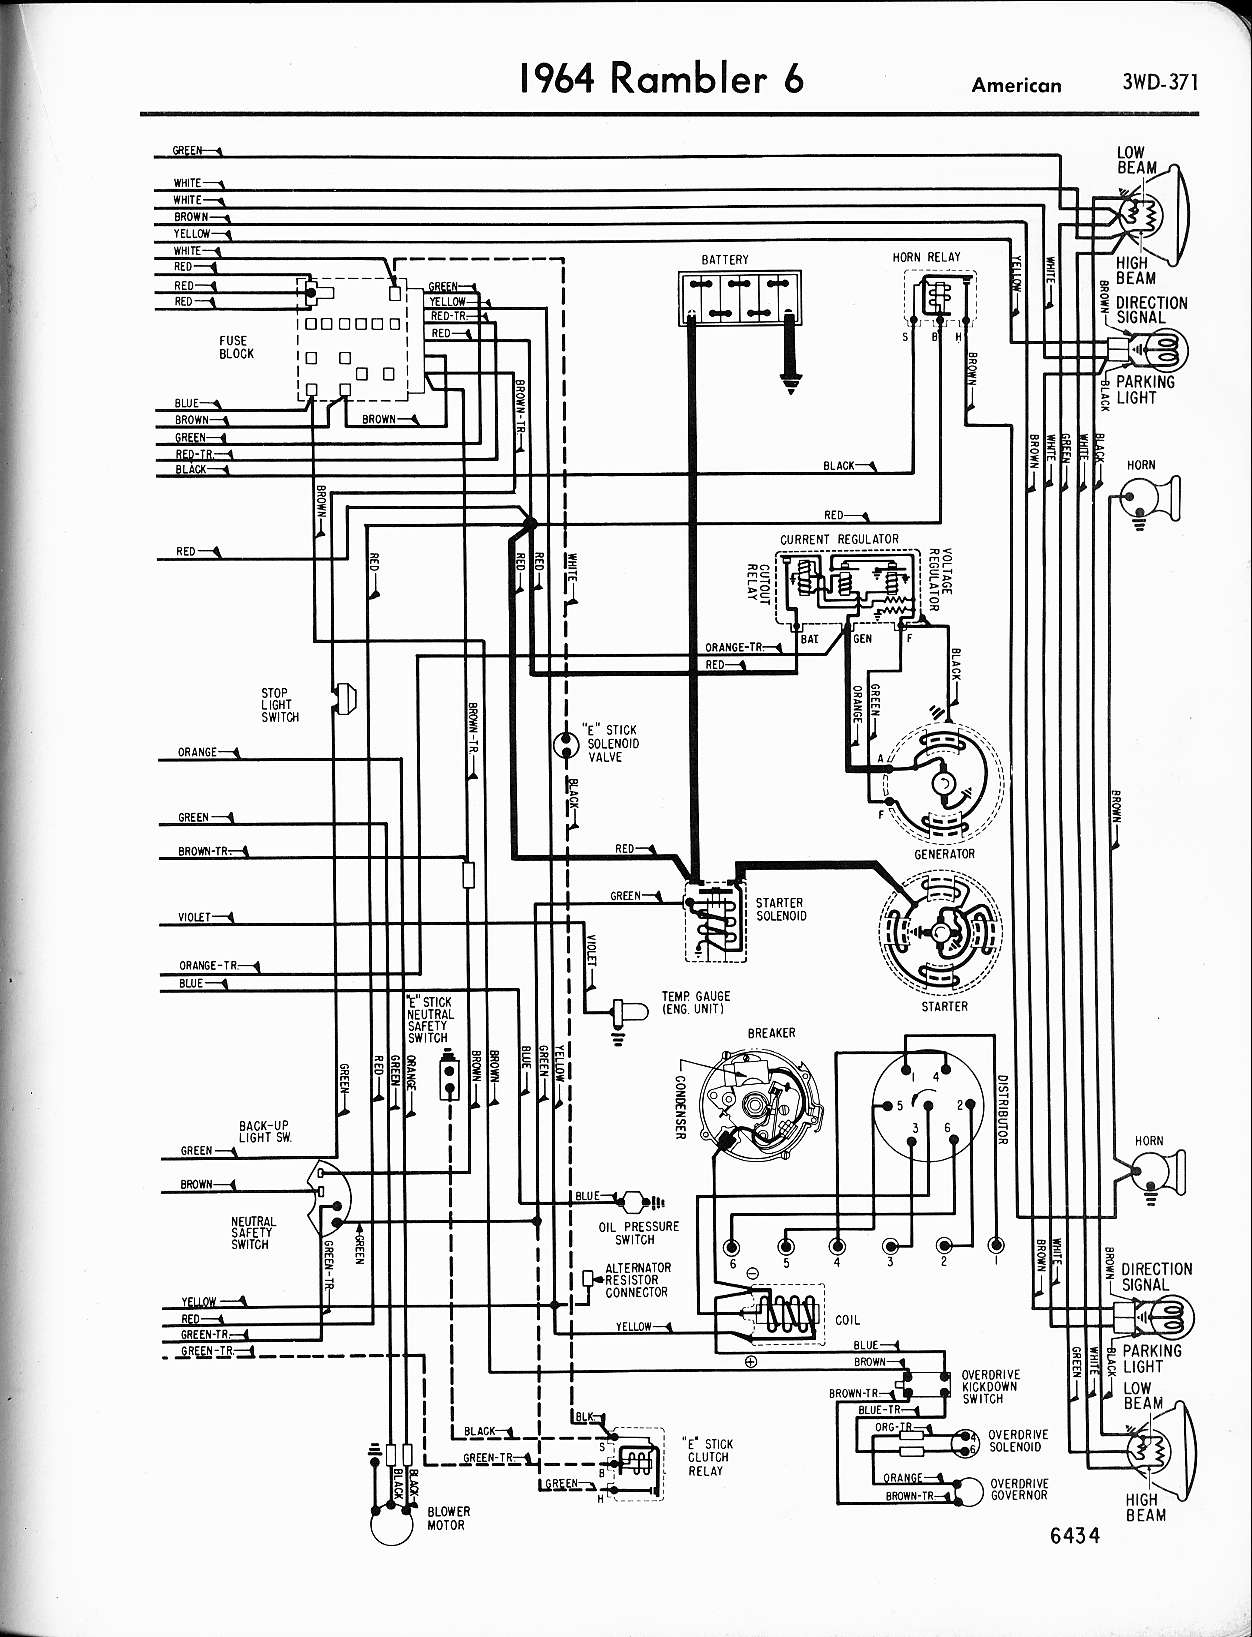 1967 Rambler American Wiring Diagram Chevelle Schematic Online Diagrams The Old Car Manual Project Rh Oldcarmanualproject Com Ford